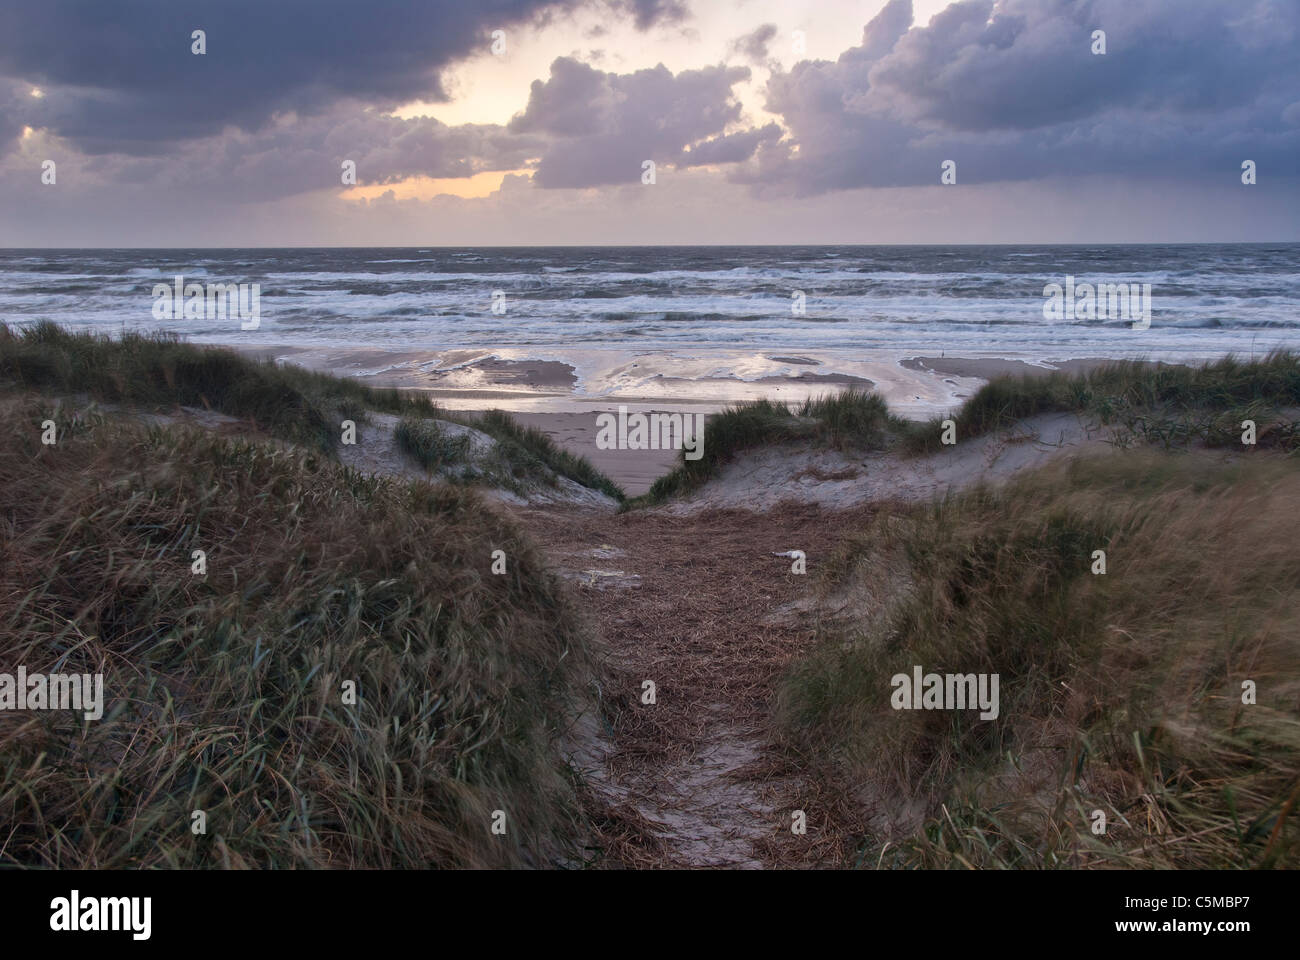 Sunset on North Sea beach with dune in foreground at Vejers beach, Jutland, Denmark - Stock Image